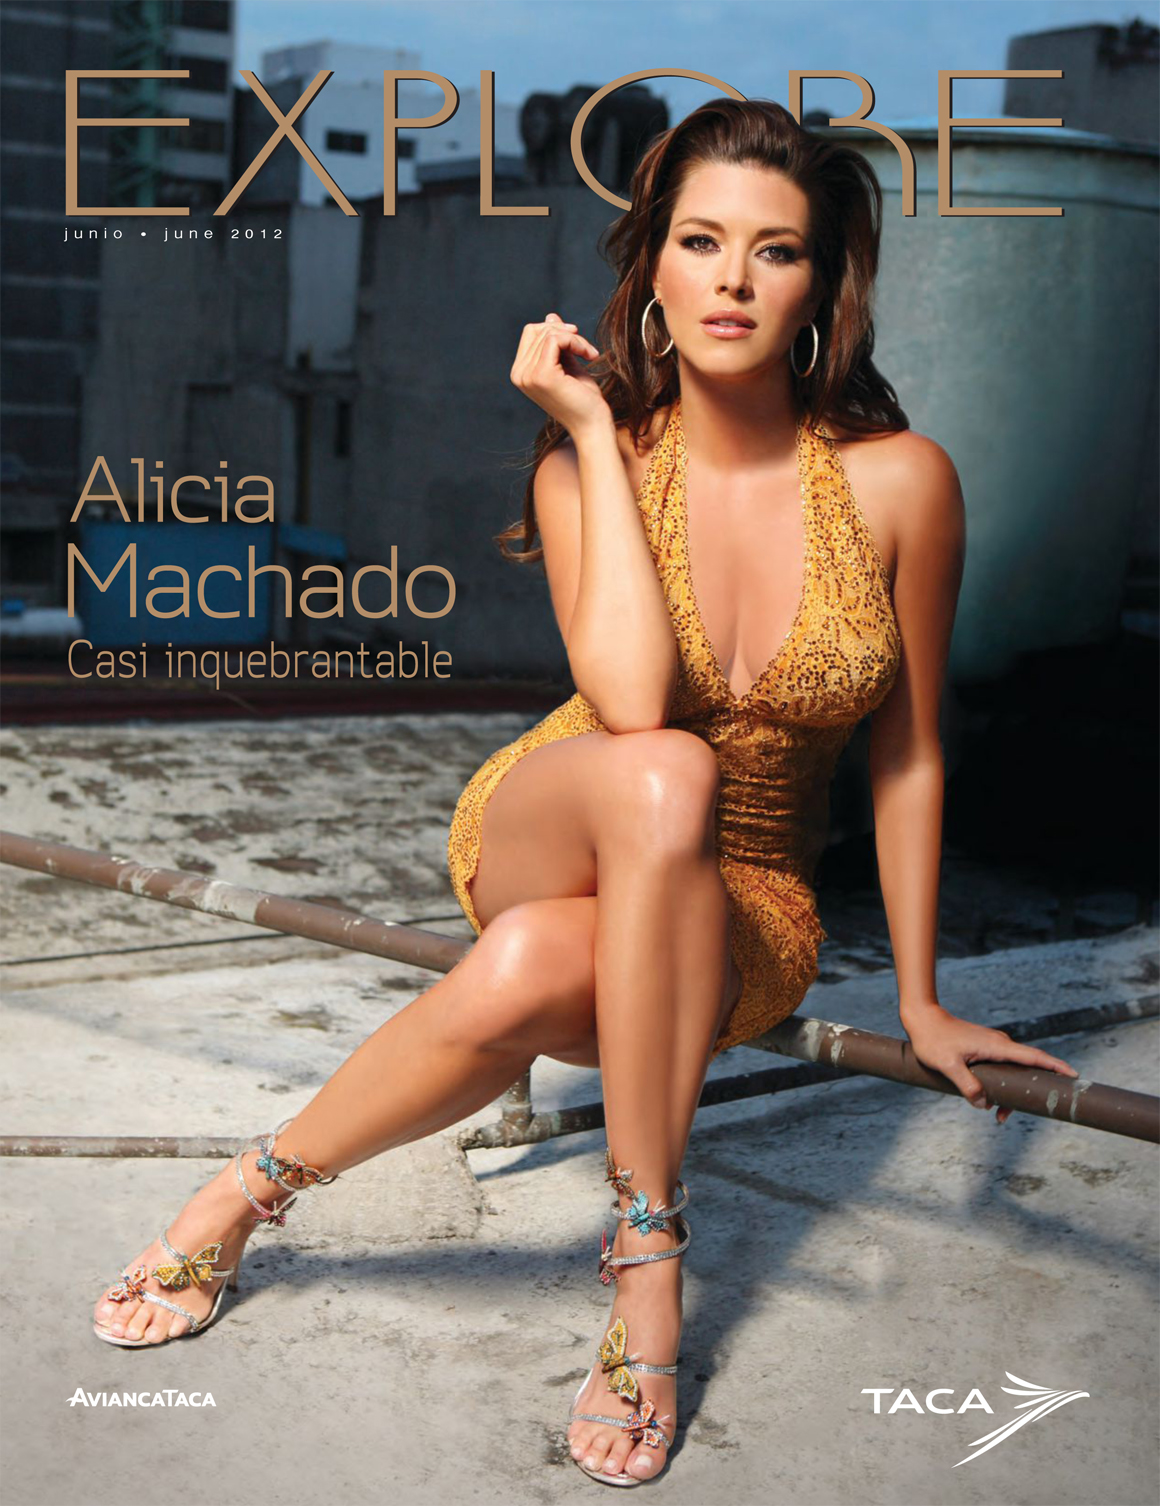 Alicia Machado - Explore magazin.jpg - 913.34 KB